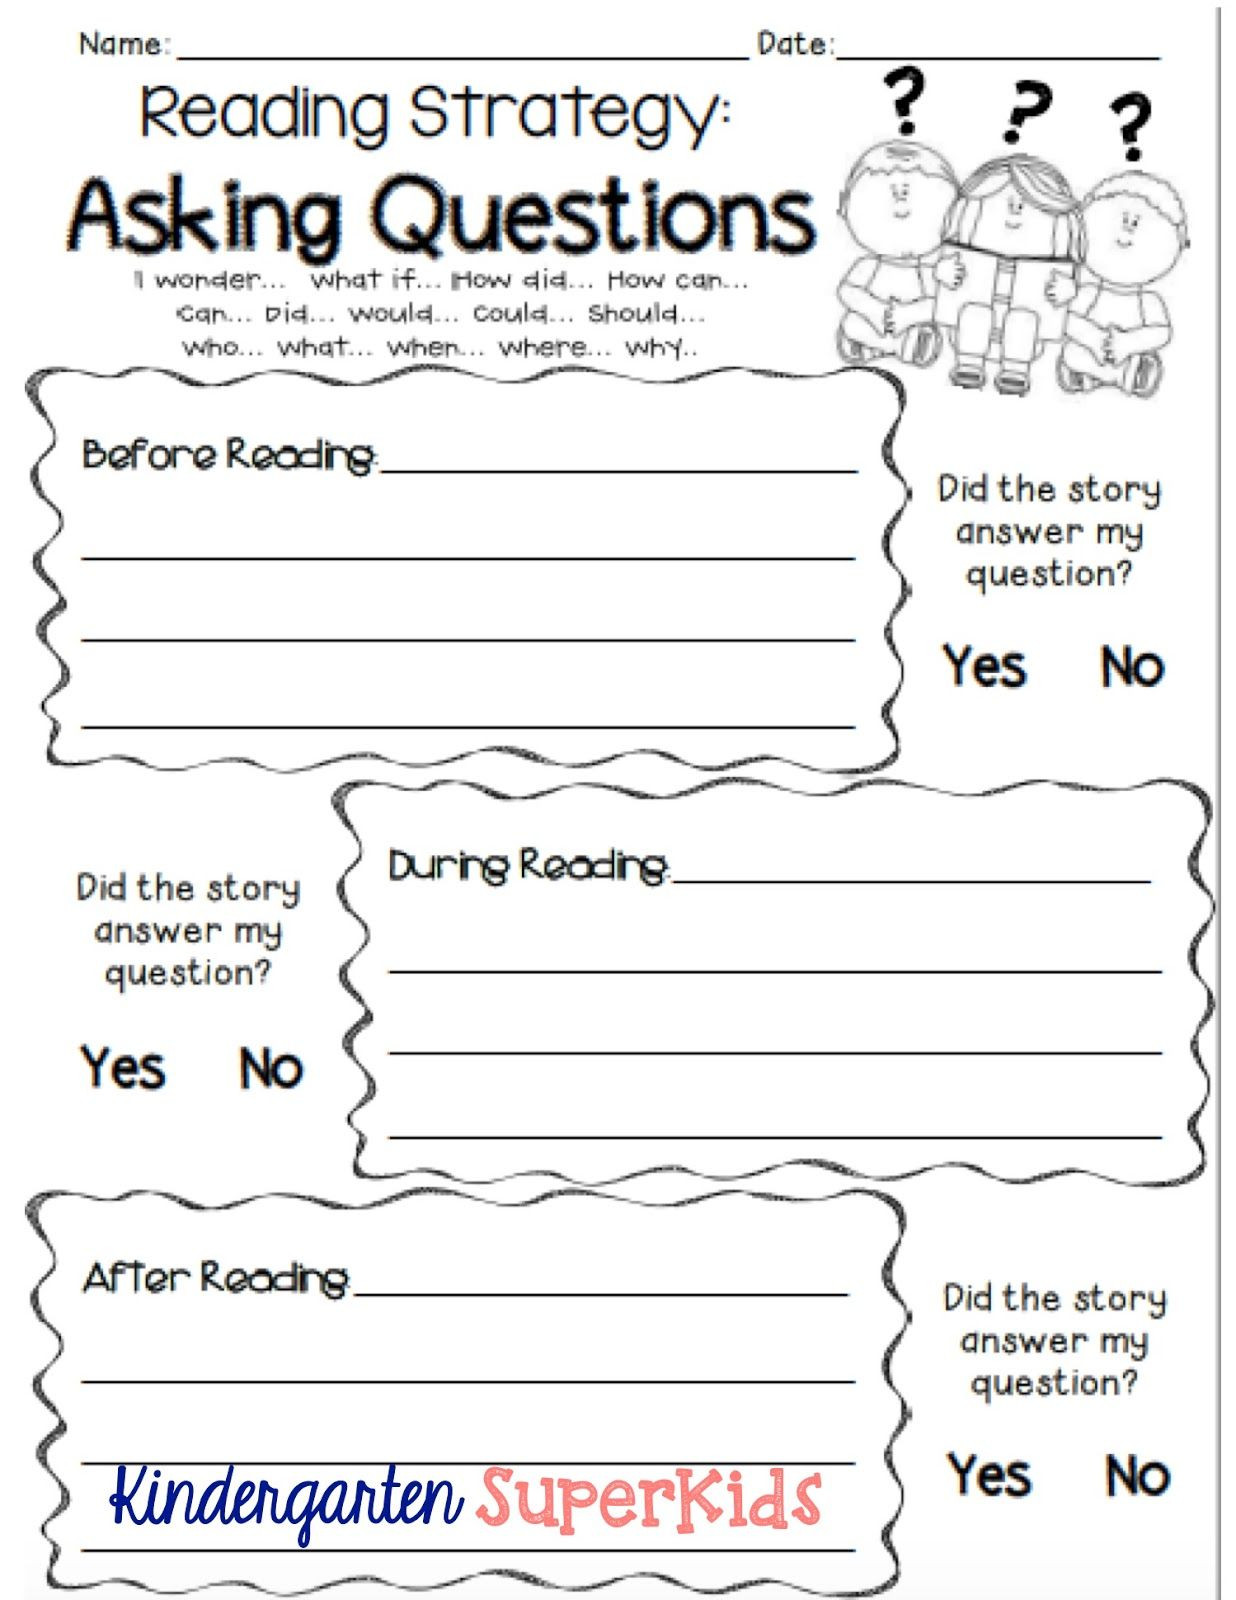 2nd Grade Timeline Worksheets asking Questions Reading Strategy Free Student Recording